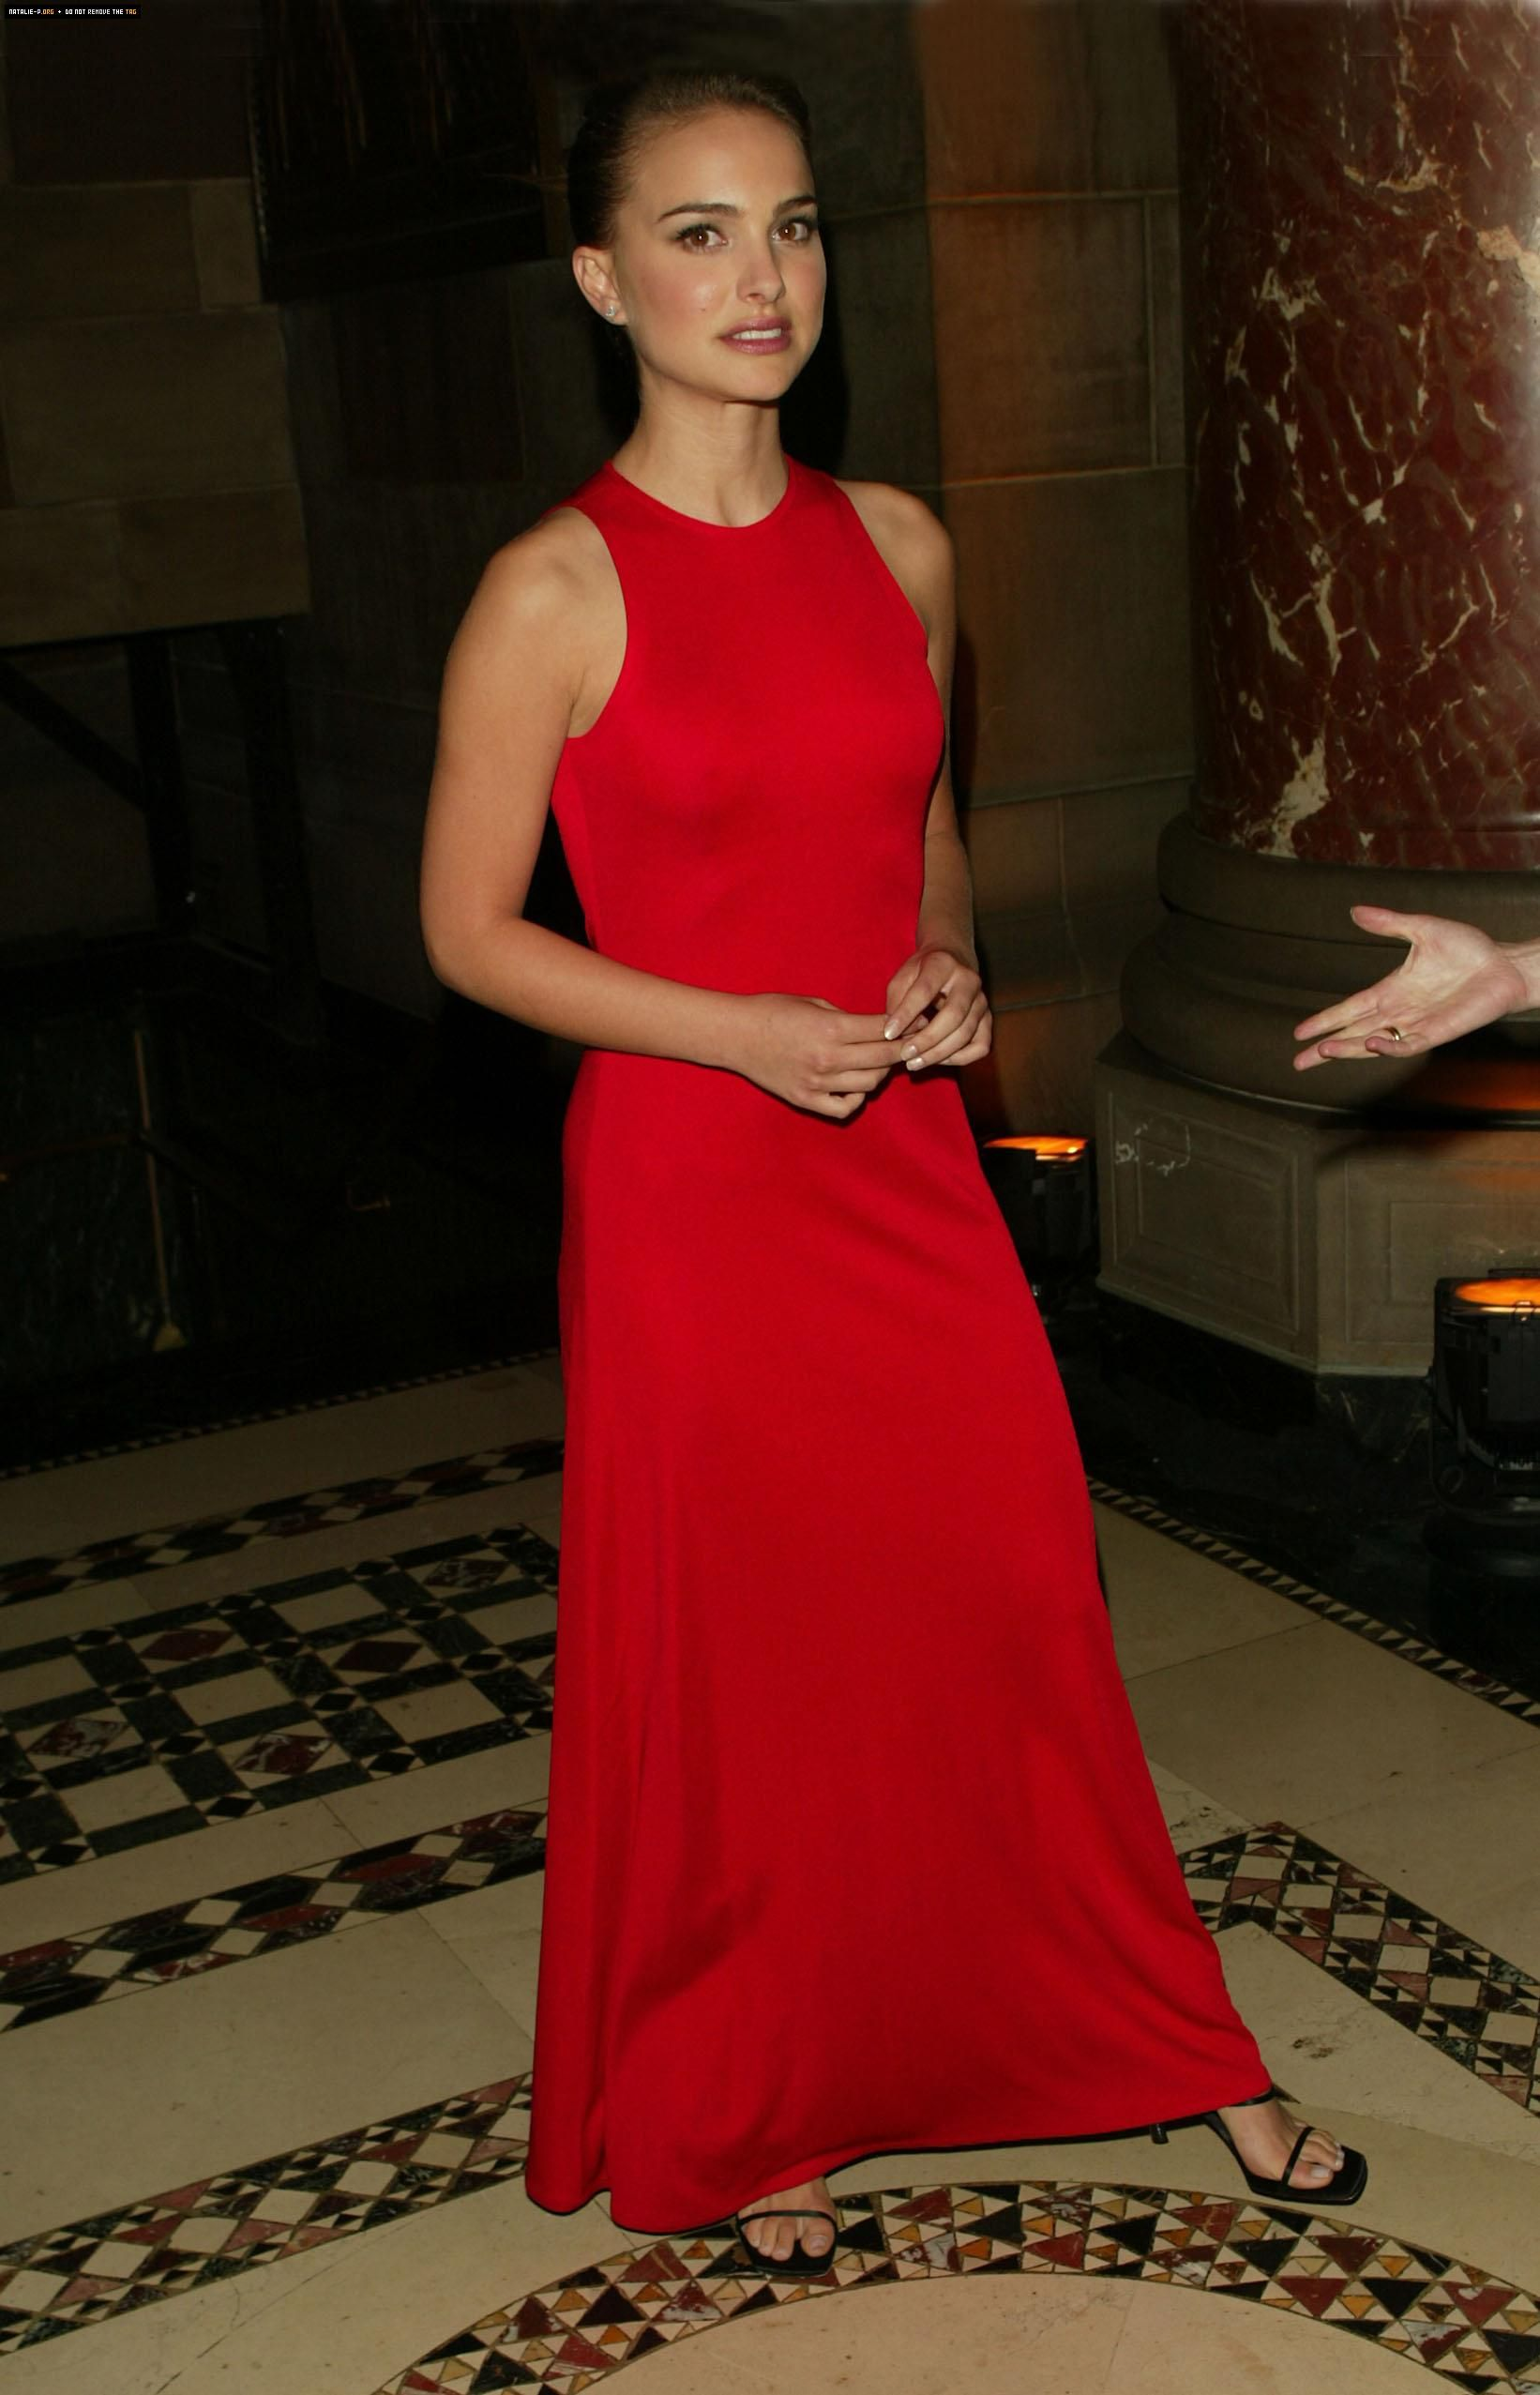 Portman in red celebrities ritzy royal red pinterest